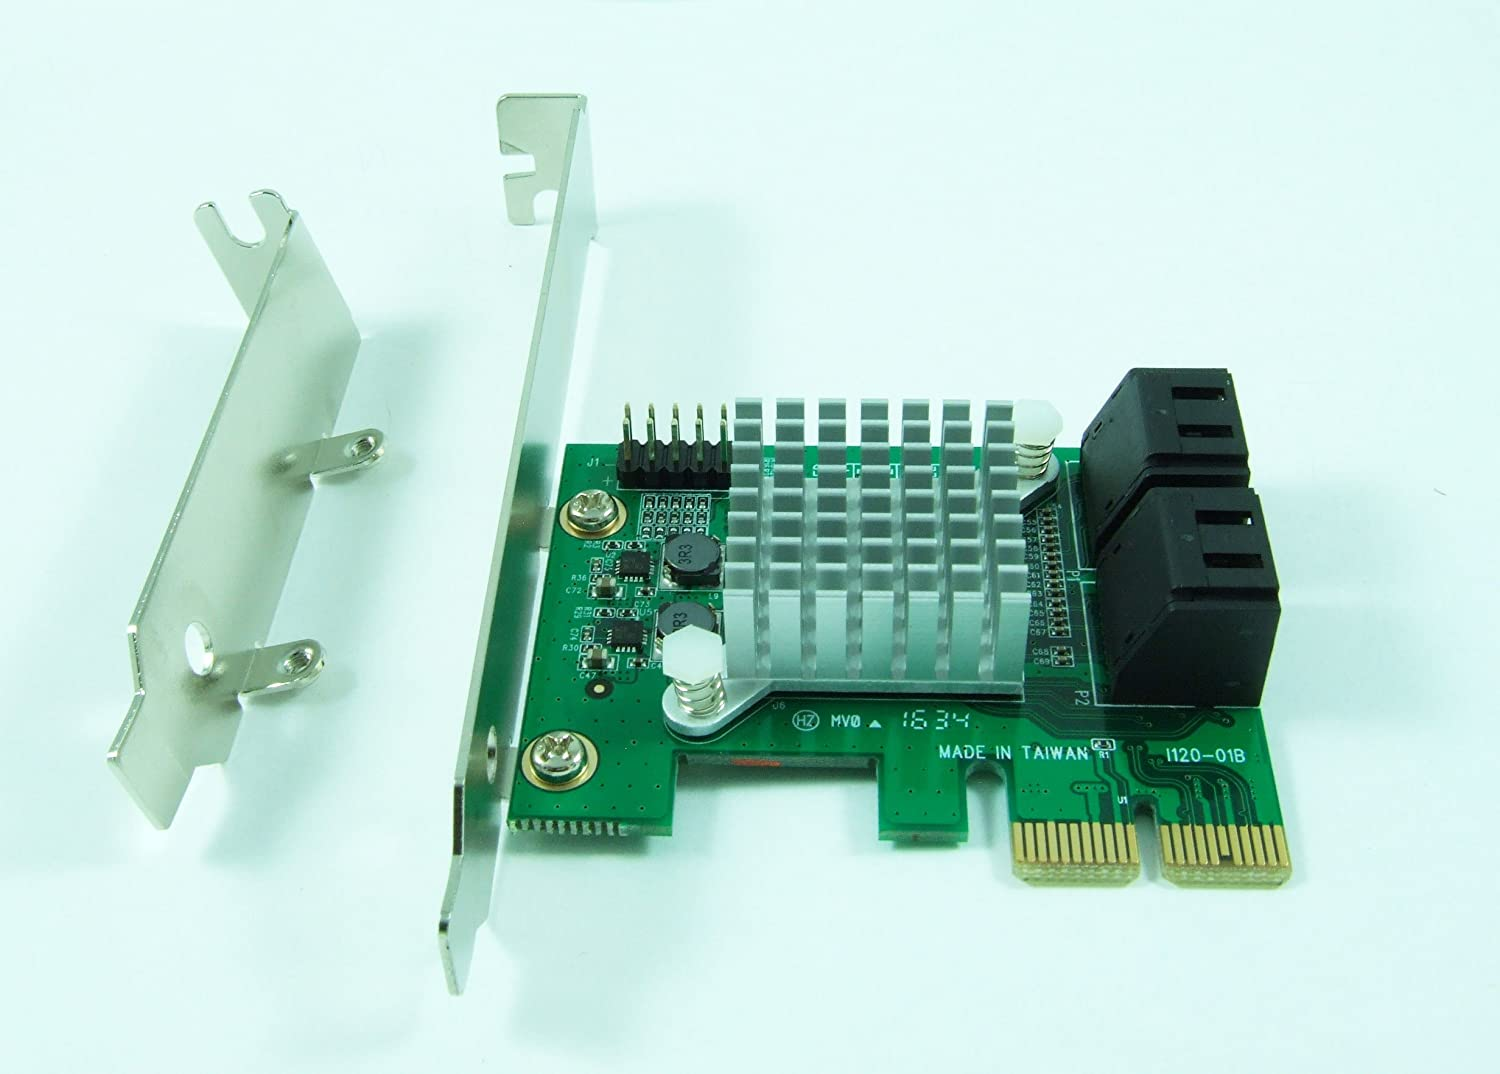 Ableconn PCIe SATA Adapter Card Interno Adaptador y Tarjeta ...